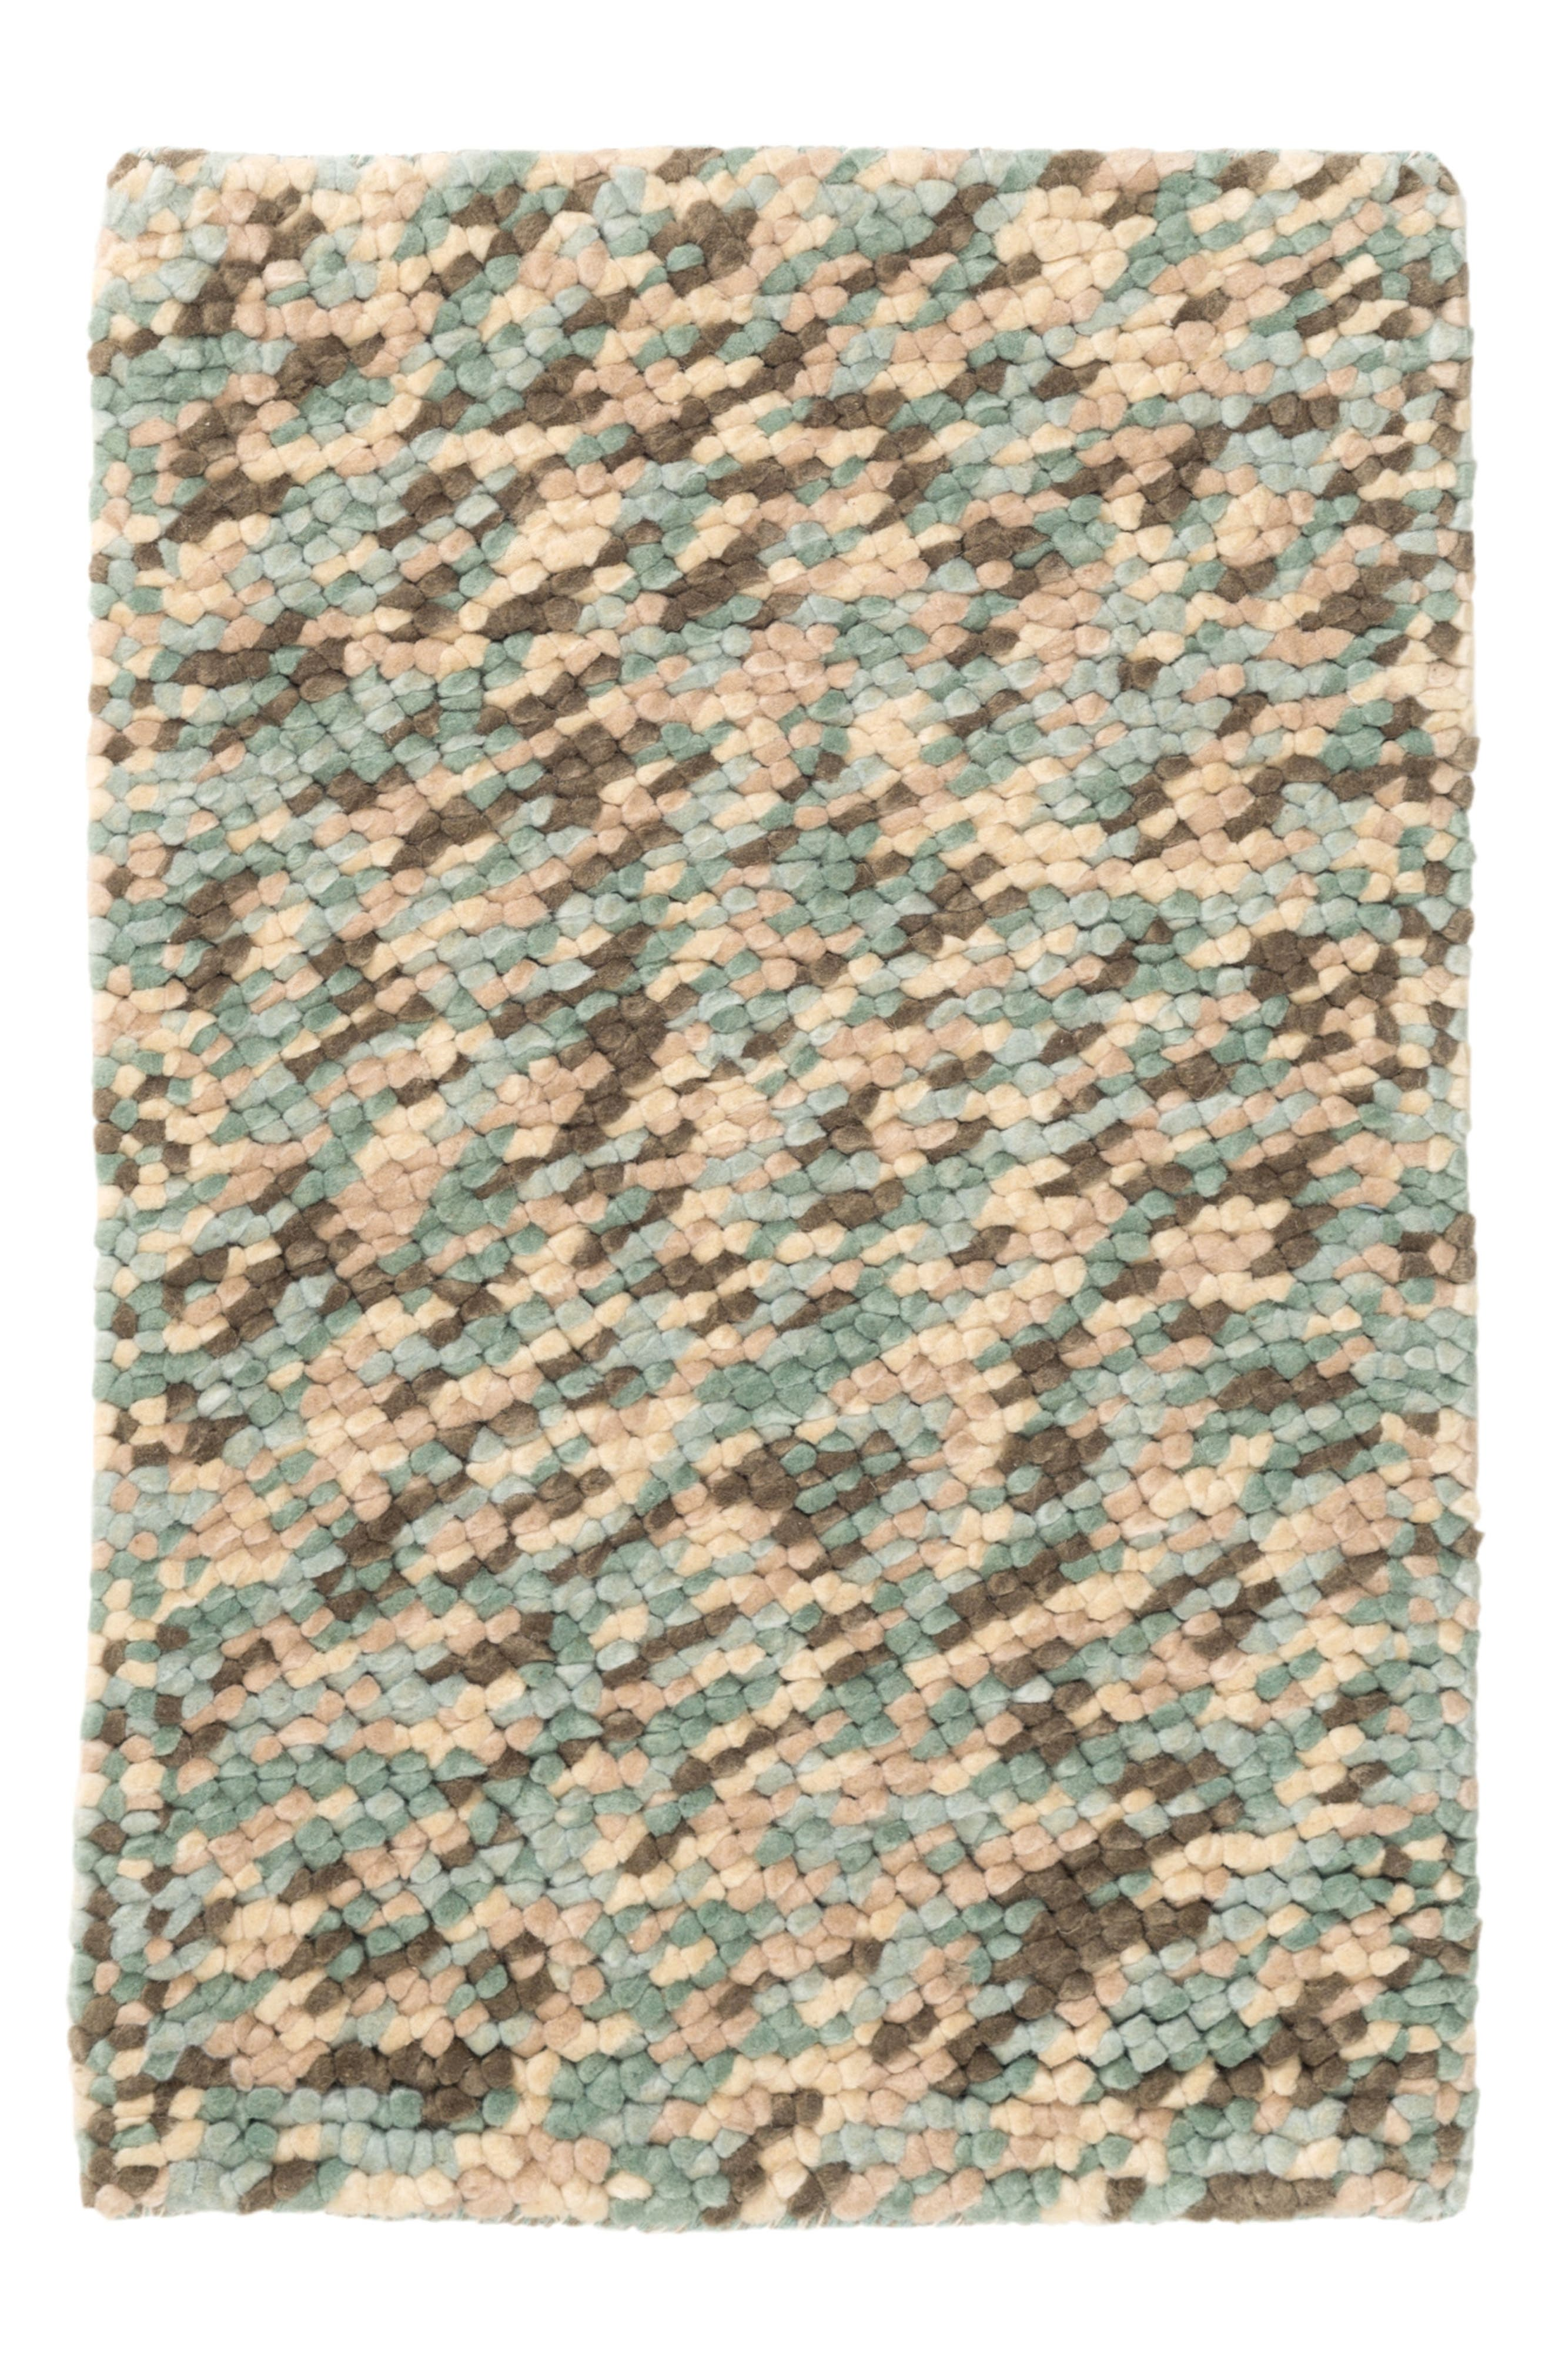 Main Image - Dash & Albert Seurat Seaglass Wool Rug